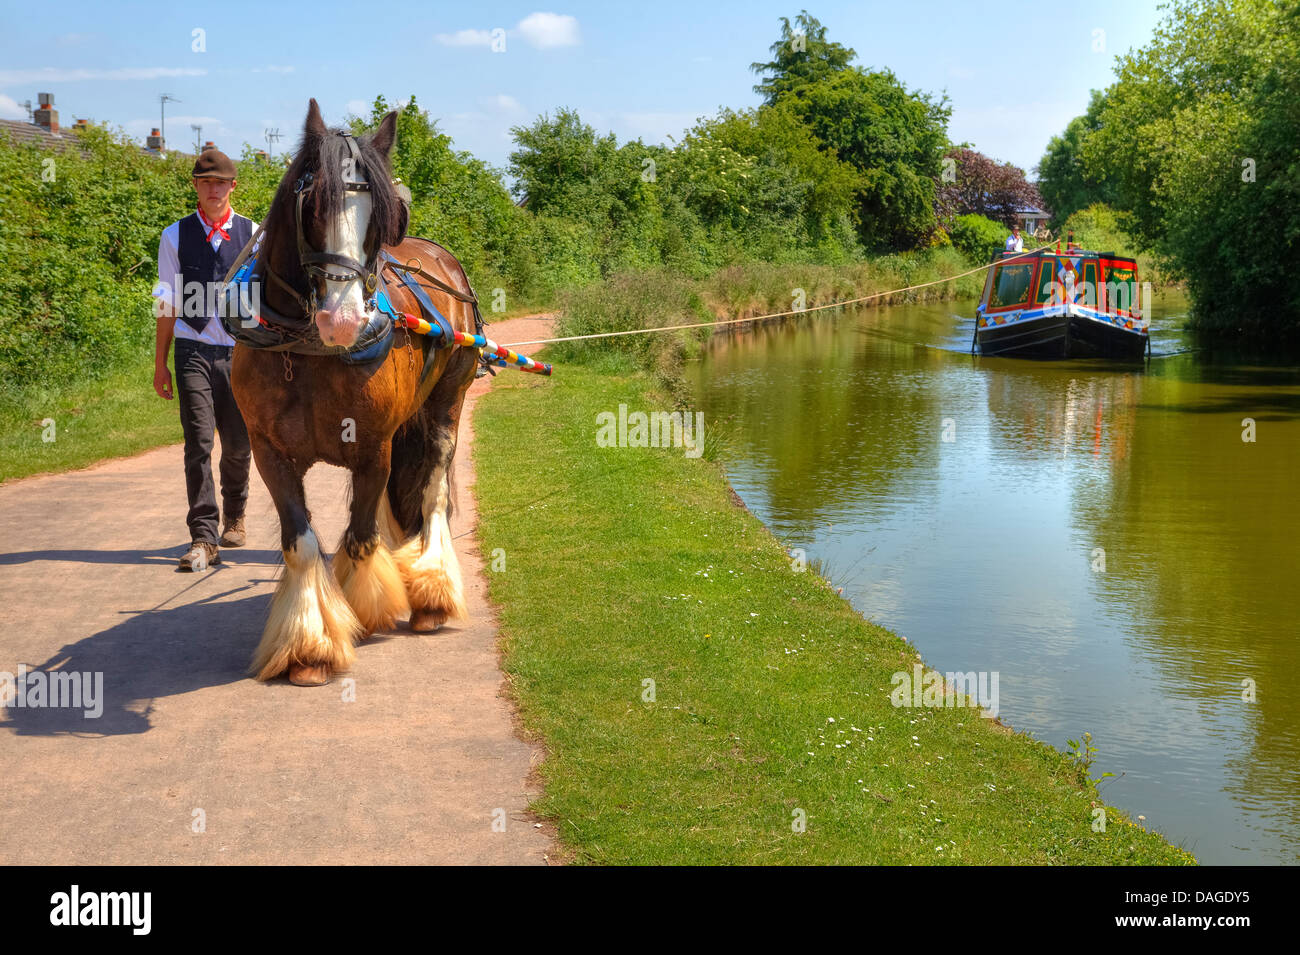 Horse drawn barge on the Great Western Canal, Tiverton, Devon, England, United Kingdom - Stock Image